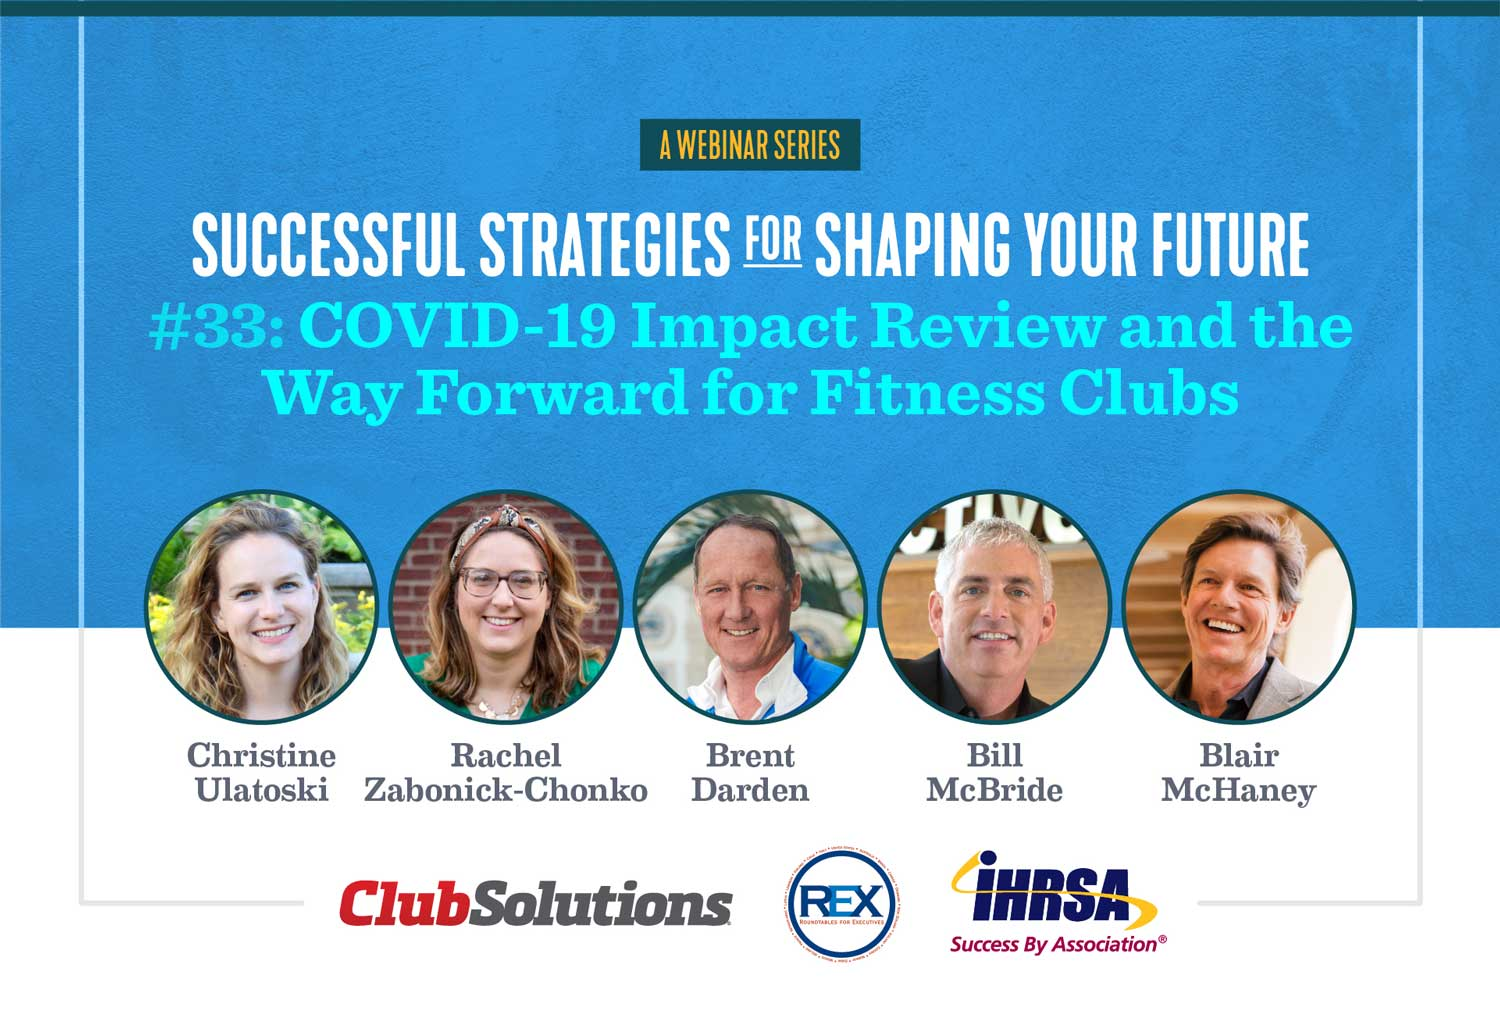 COVID-19 impact review